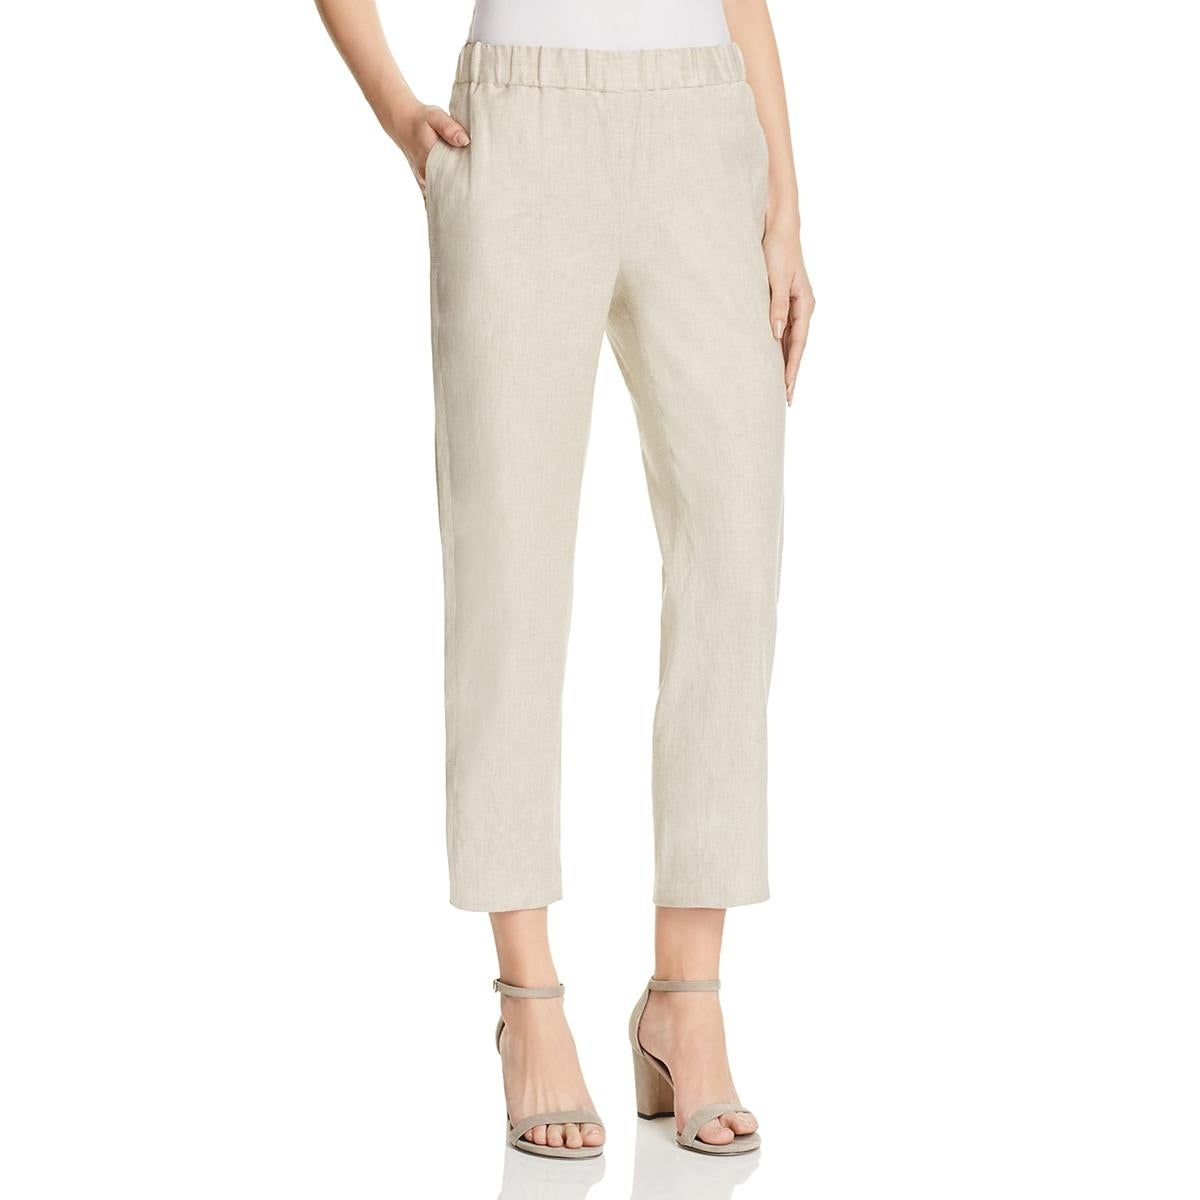 45893cf0dfa Shop Theory Womens Thorina Cropped Pants Linen Blend Pull On - Free  Shipping On Orders Over $45 - Overstock - 23147144